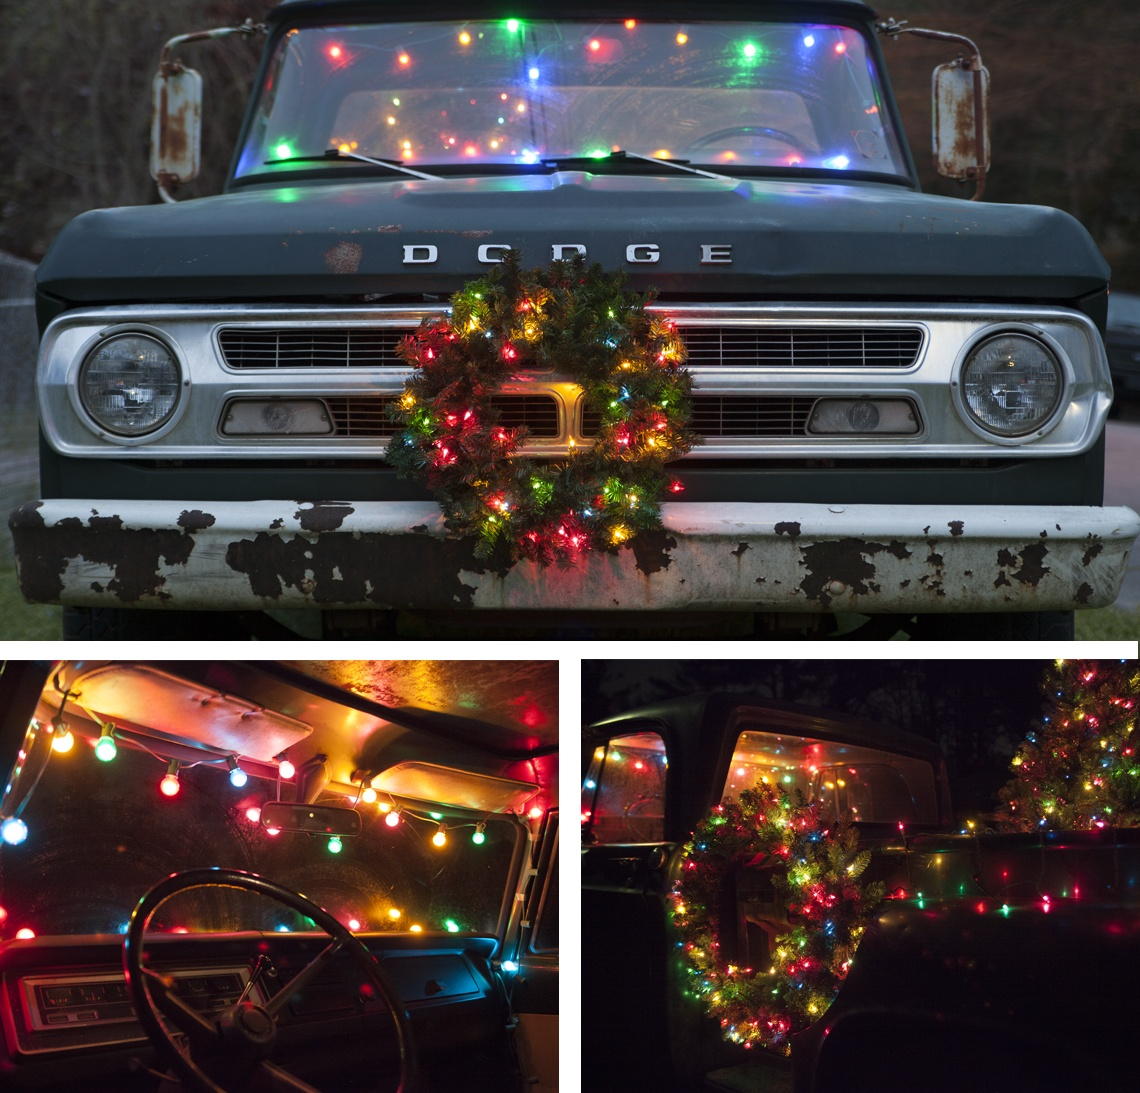 Christmas Car Decorations.Christmas Truck Decorating For The Holidays